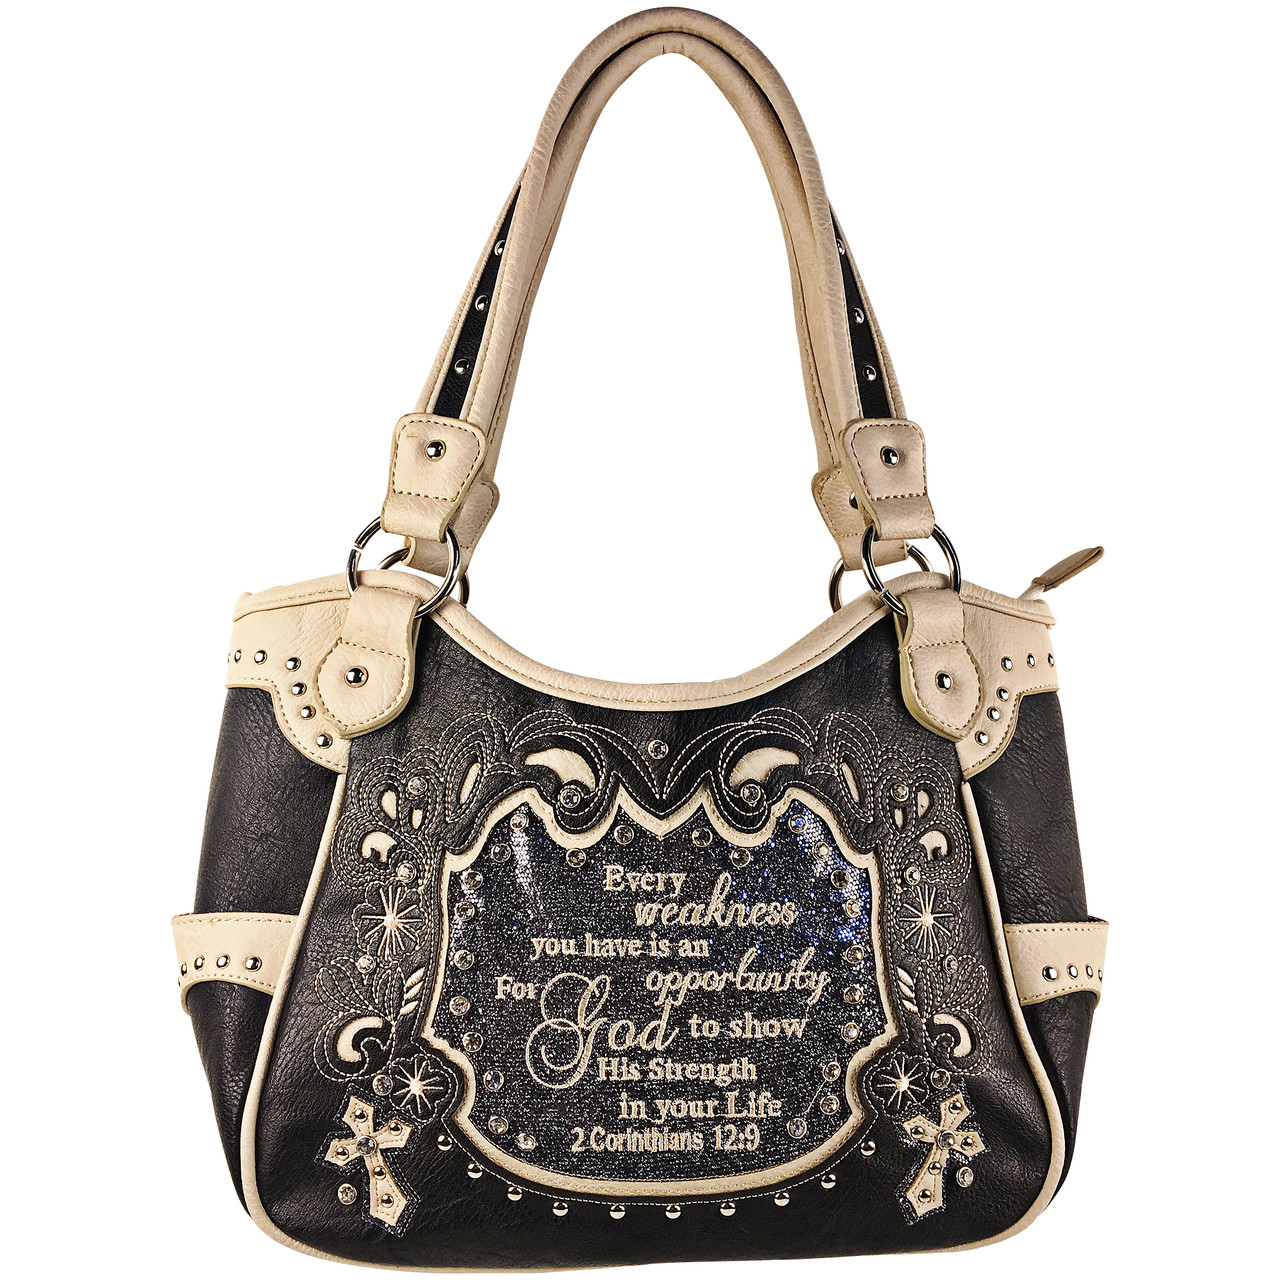 GRAY BIBLE LIFE QUOTE RHINESTONE STUDDED LOOK SHOULDER HANDBAG